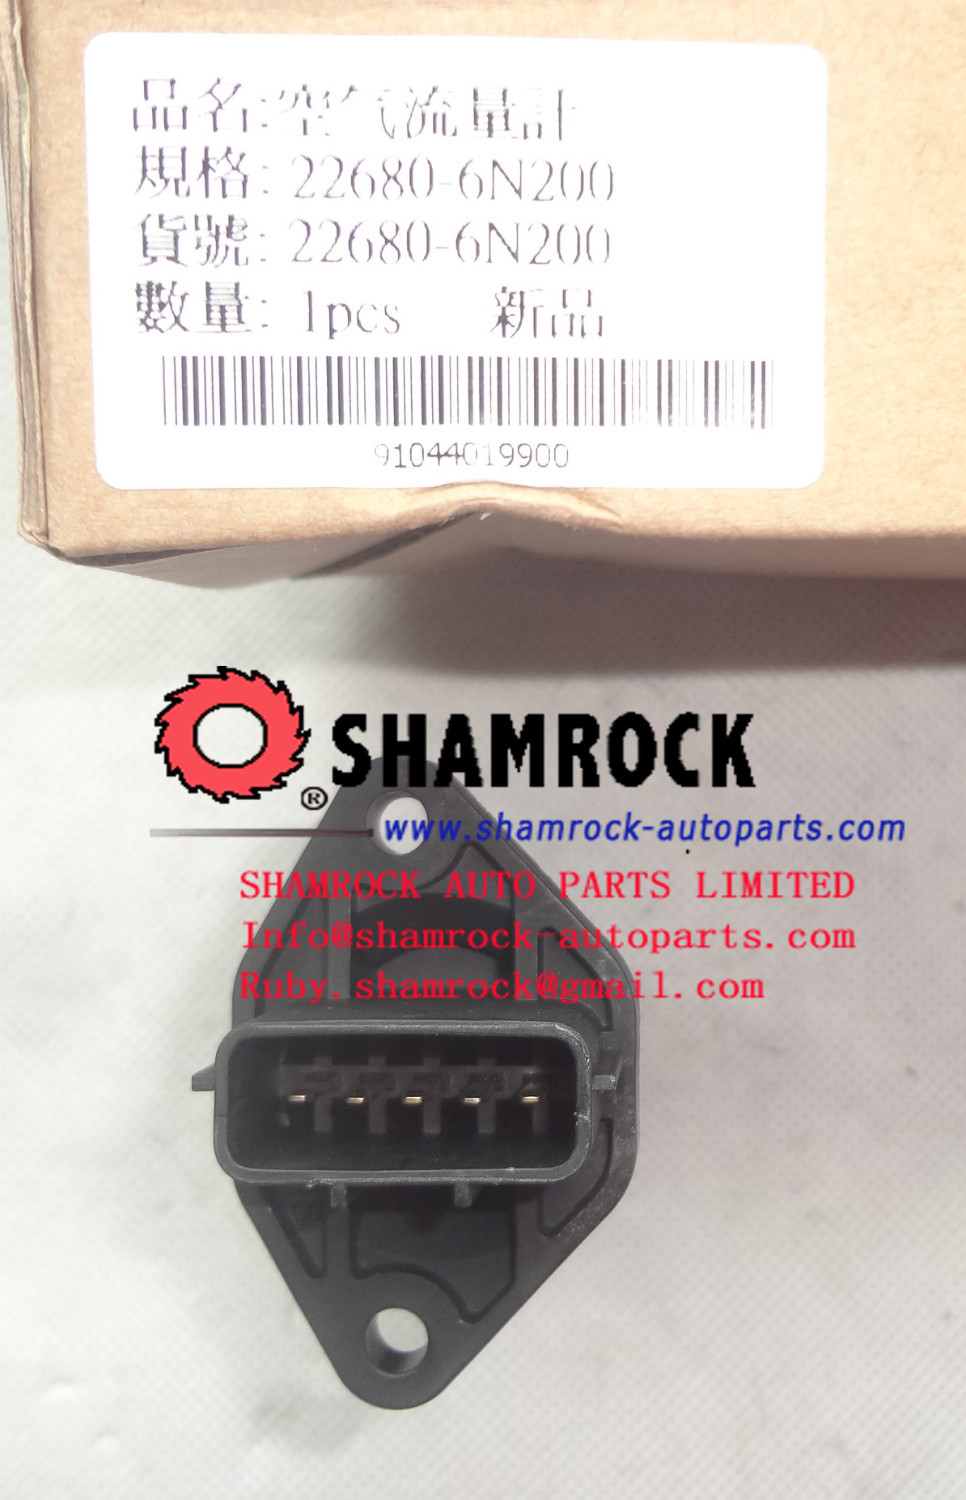 Infiniti X Trail T30 Skyline V35 250gt Mass Air Flow Sensor 22680 Detector Circuit 6n21a 6n201 6n200 6n211 5pins Or 4ins In Ignition Coil From